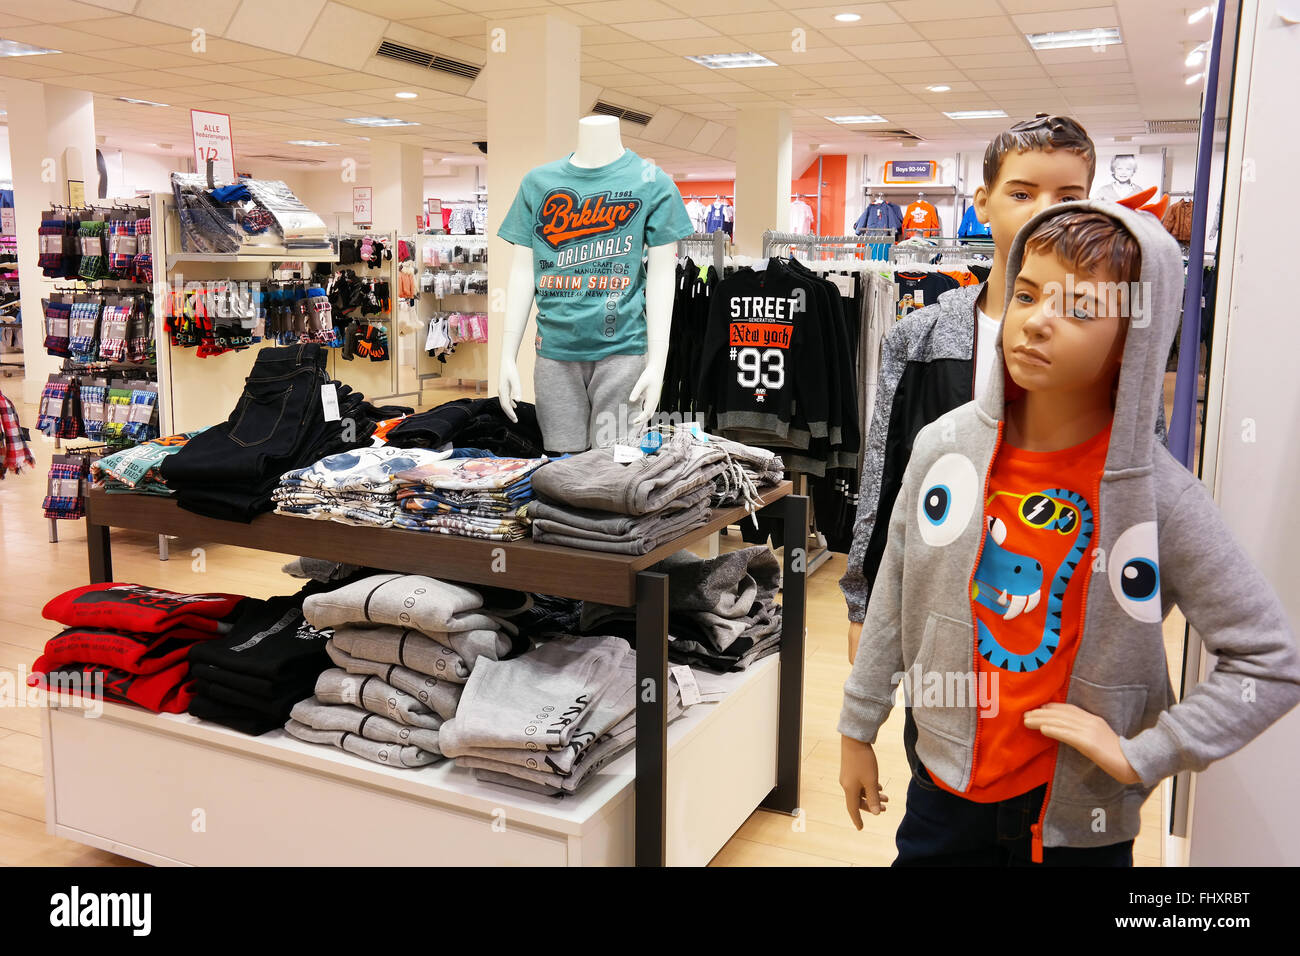 Interior of a C&A fashion store. Stock Photo